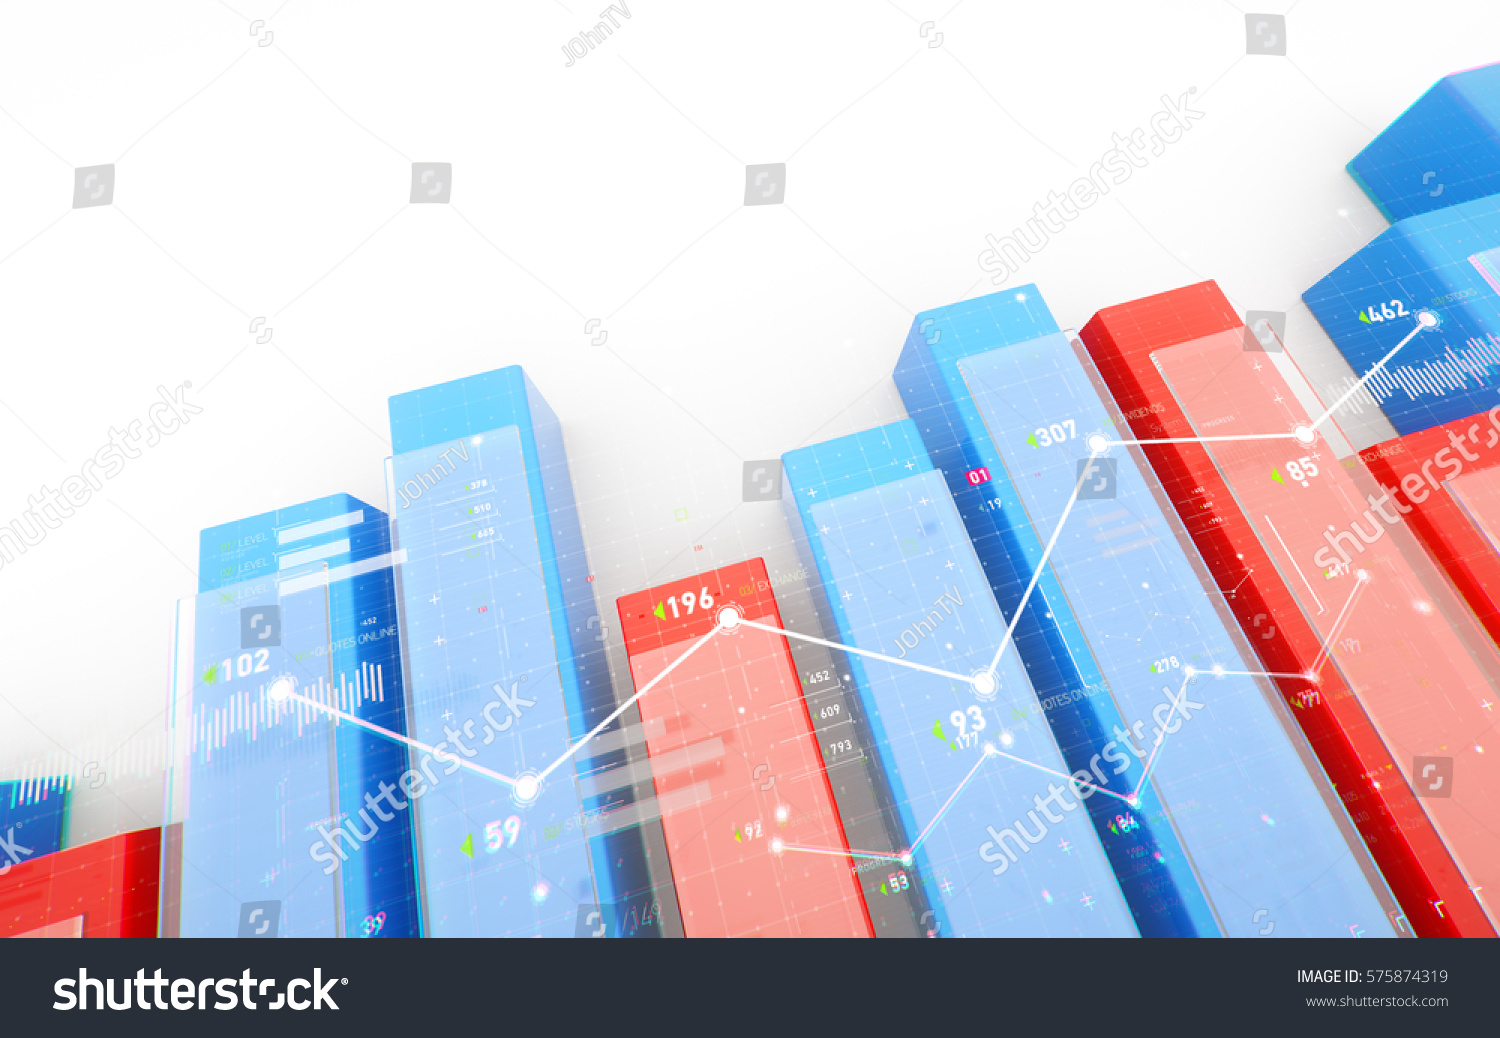 Financial Business Report Background Network Diagram Stock